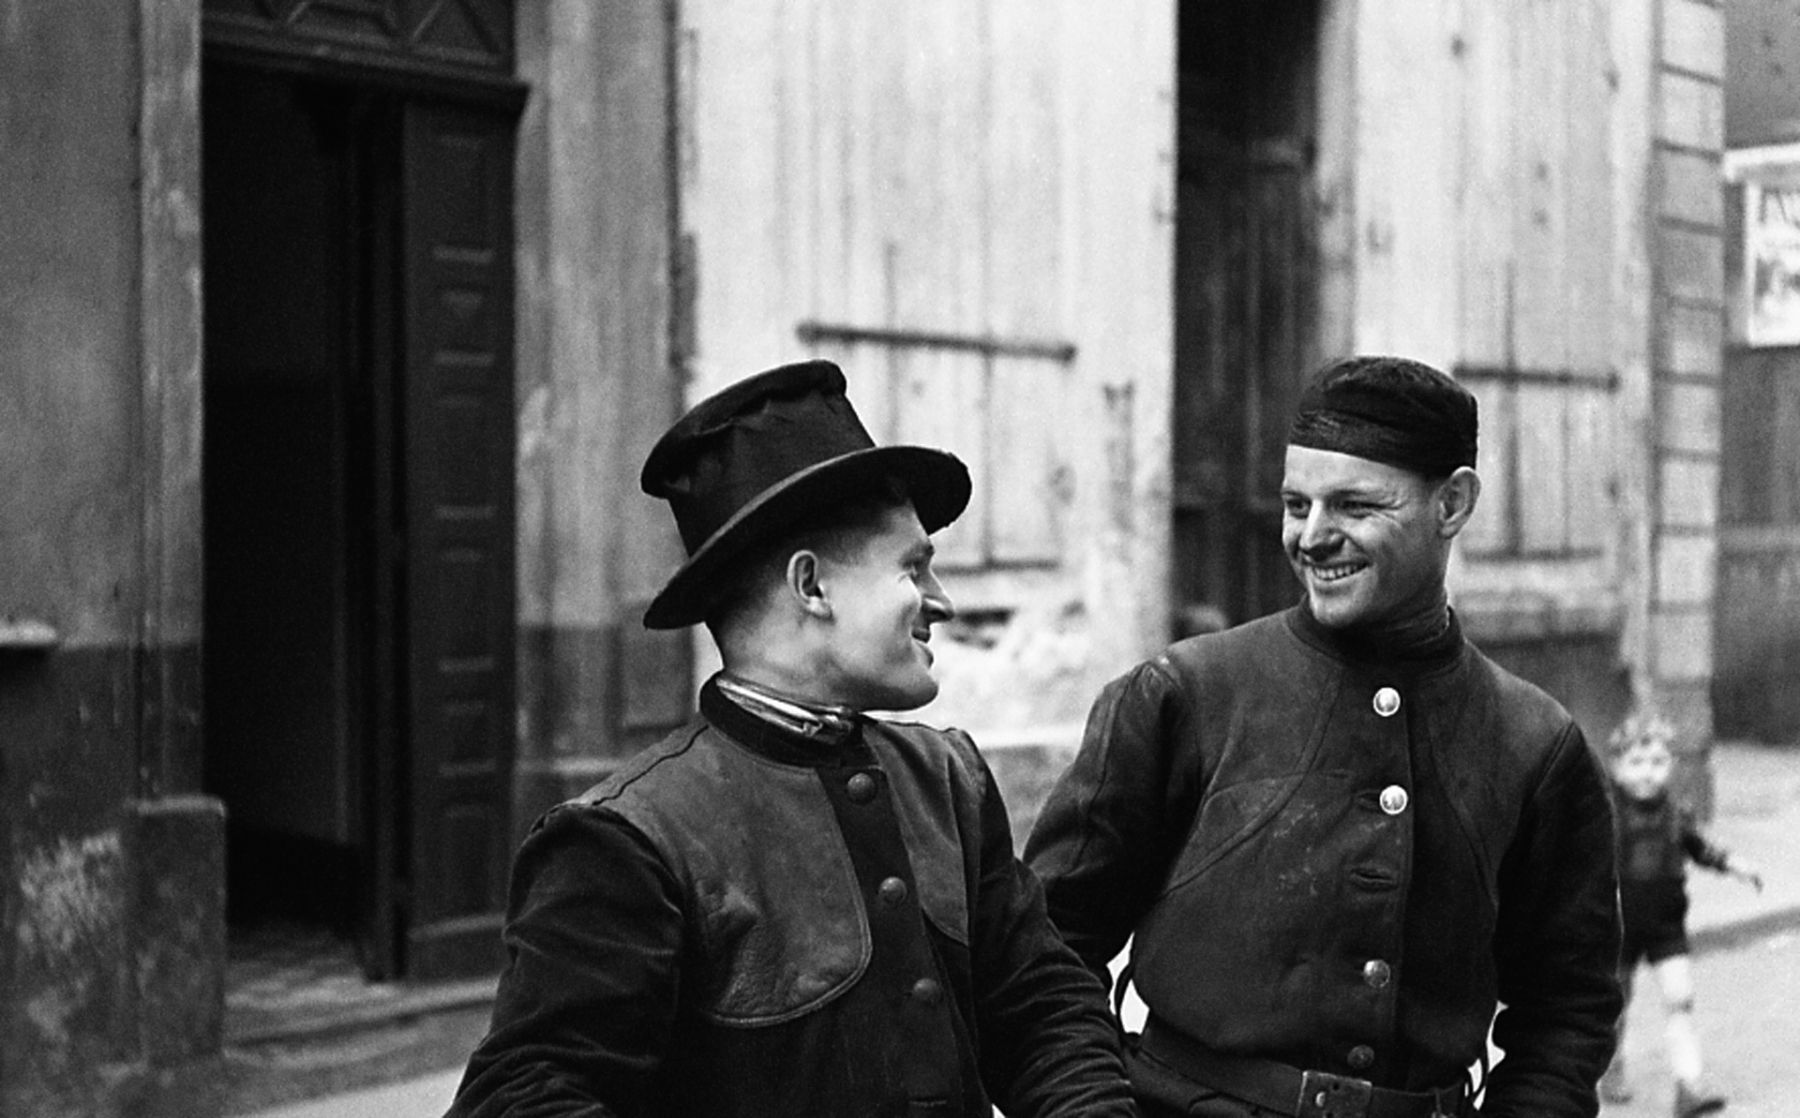 Chimney Sweeps, Germany, 1952, Silver Gelatin Photograph